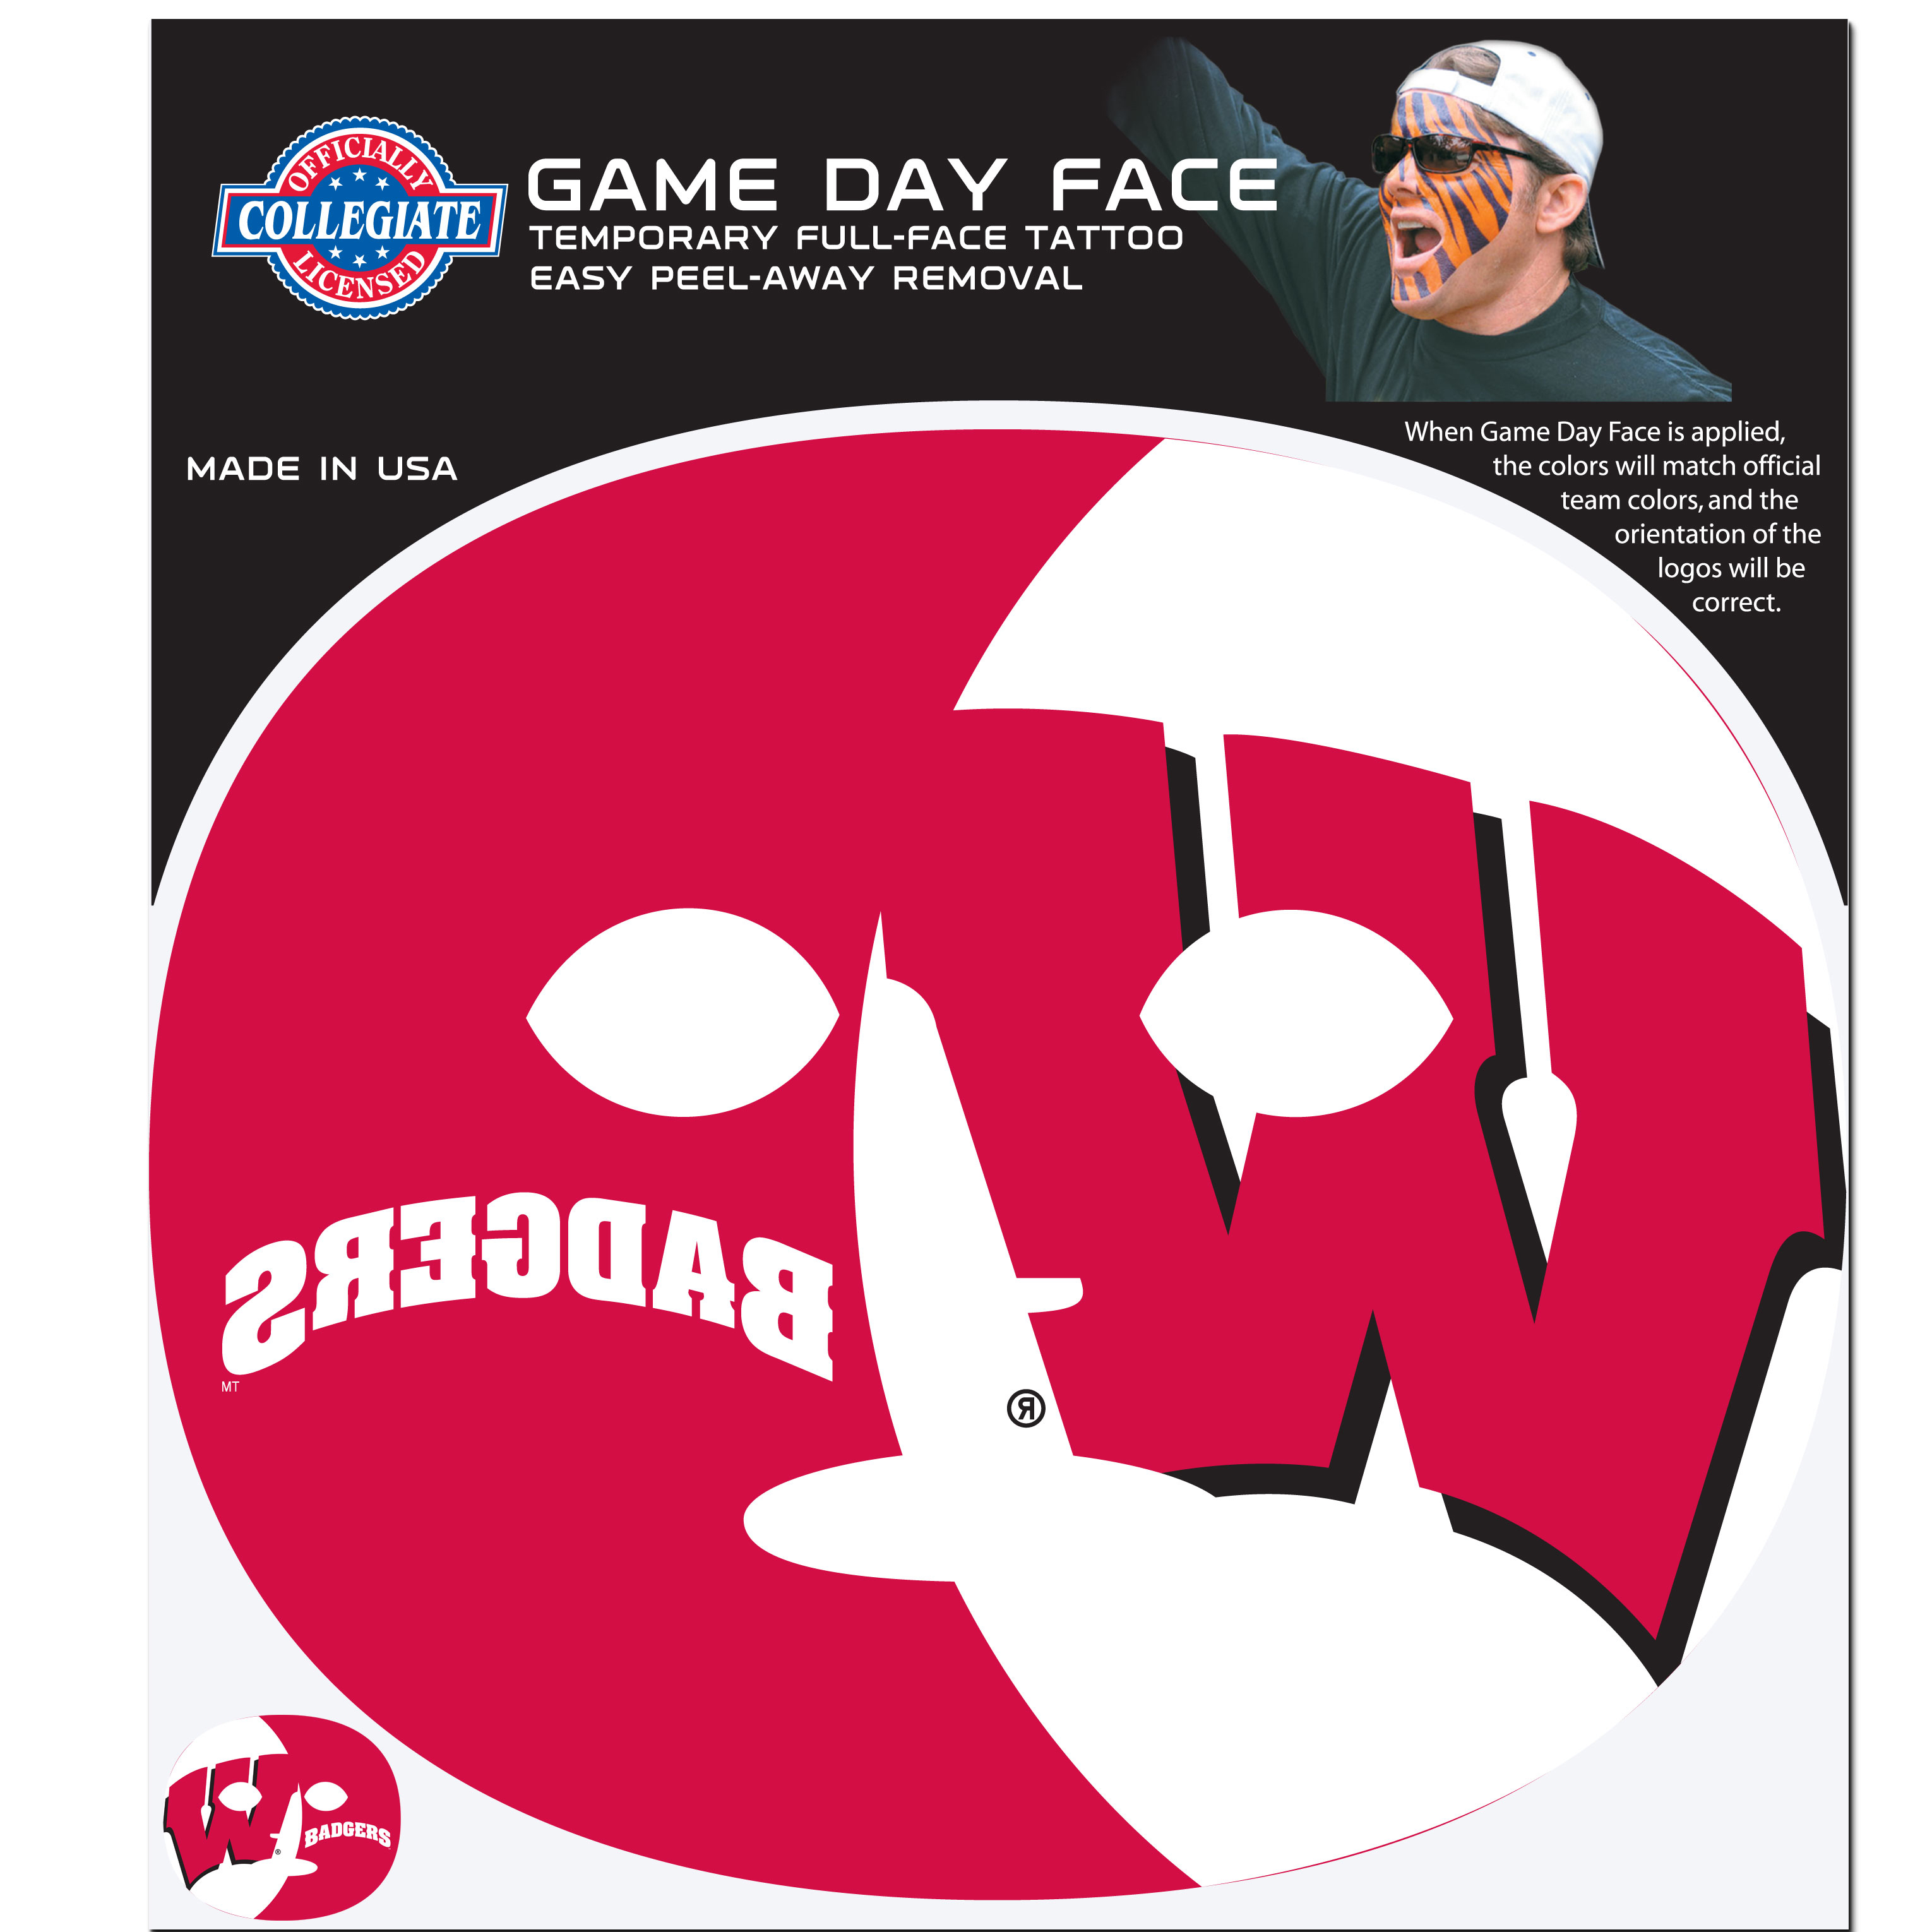 Wisconsin Badgers Set of 4 Game Day Faces - No better way to show your team pride than by painting your face. Siskiyou's Game Day Face Temporary Tattoo isn't your typical face paint. It is a water based application that doesn't smudge, smear or sweat off while you're wearing it and easily peels off after you're done celebrating your team's big Win! The temporary tattoo is large enough to trim down to fit your face. Our Game Day Face Temporary Tattoo's are fun for fans of all ages. You may have seen our product before, these are the same Temporary Face Tattoos as pitched on ABC's Shark Tank.